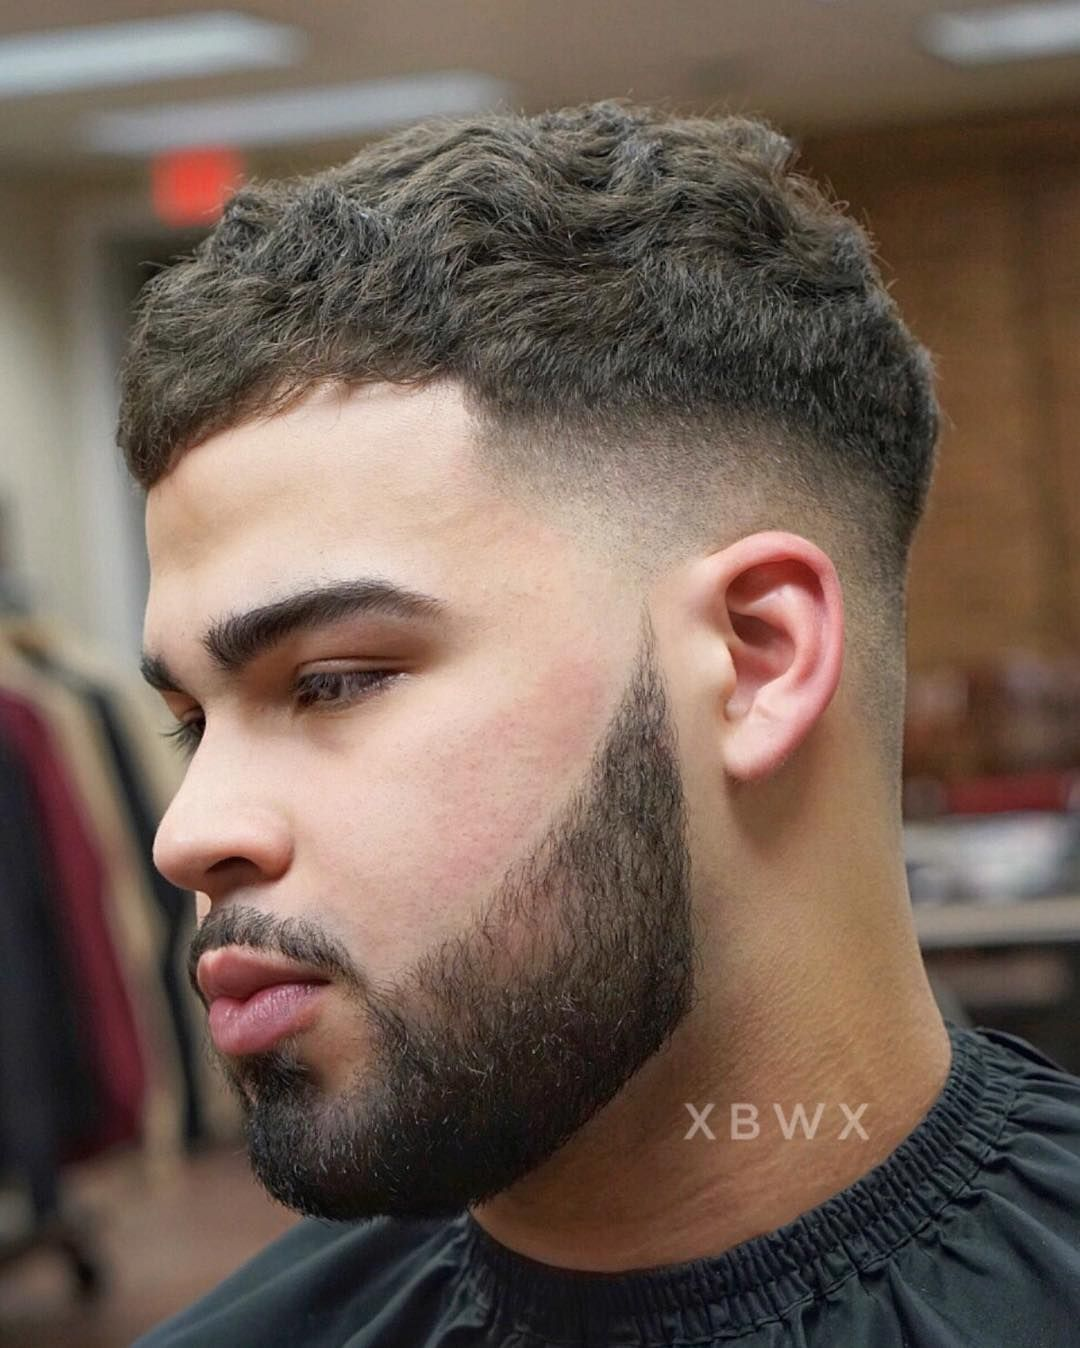 Types Of Fade Haircuts 2020 Update Mid Fade Haircut Types Of Fade Haircut Fade Haircut